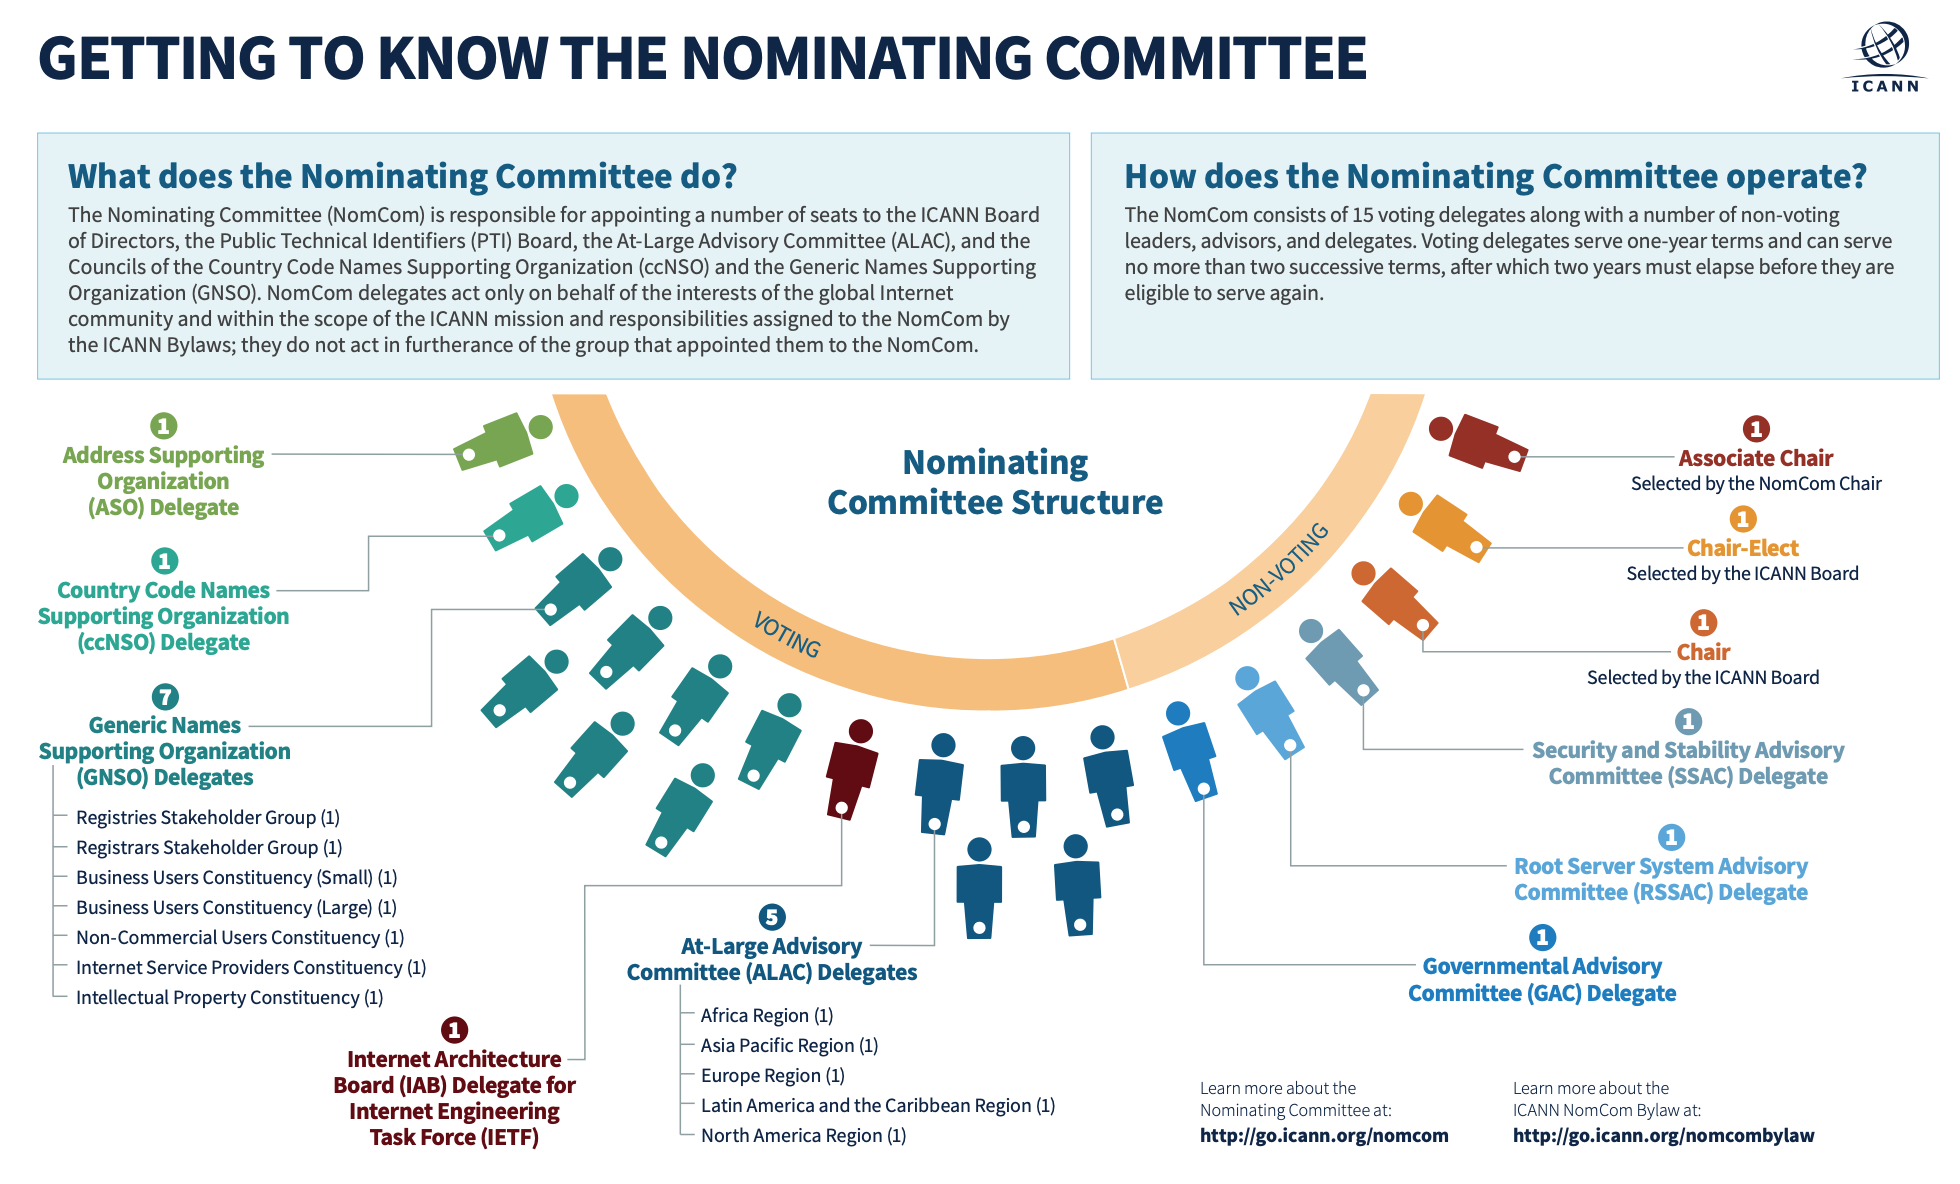 Getting to Know the ICANN Nominating Committee